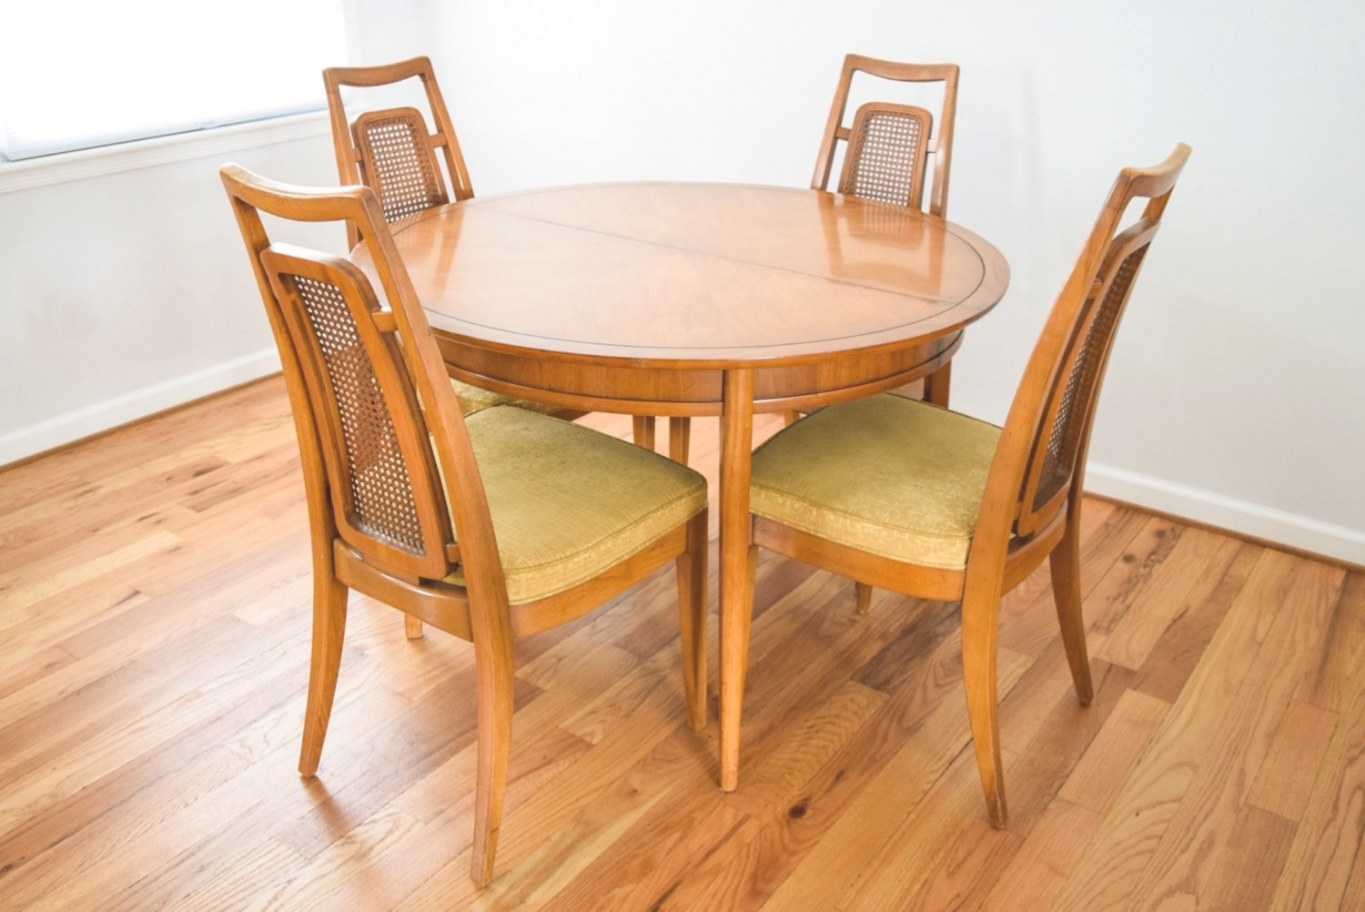 Mid Century Dining Table And Chairs Modern Dining Set with Mid Century Modern Dining Set